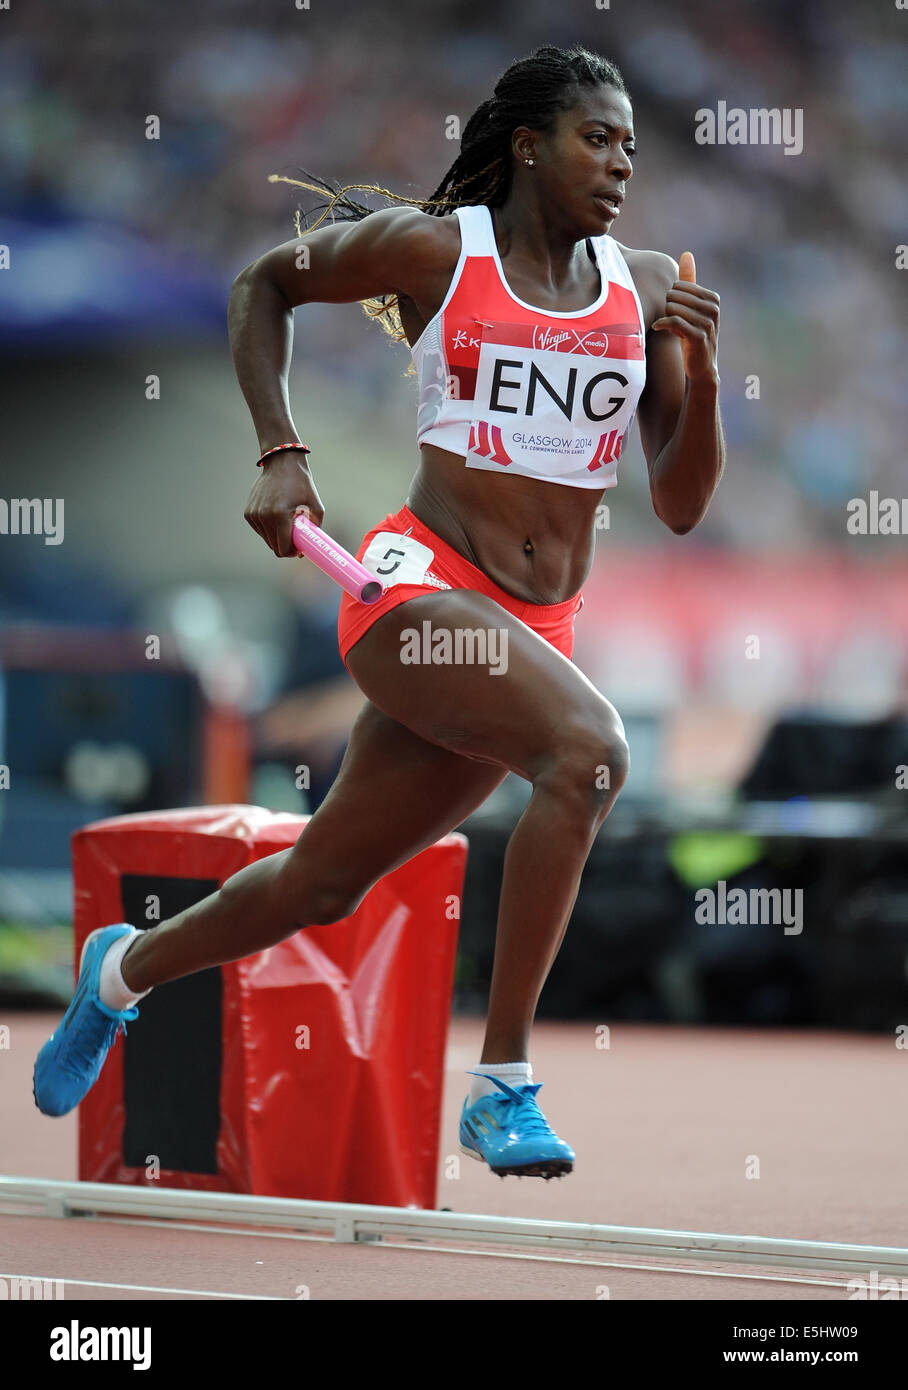 CHRISTINE OHURUOGU WOMAN'S 4X400 RELAY HAMPDEN PARK GLASGOW SCOTLAND 01 August 2014 - Stock Image